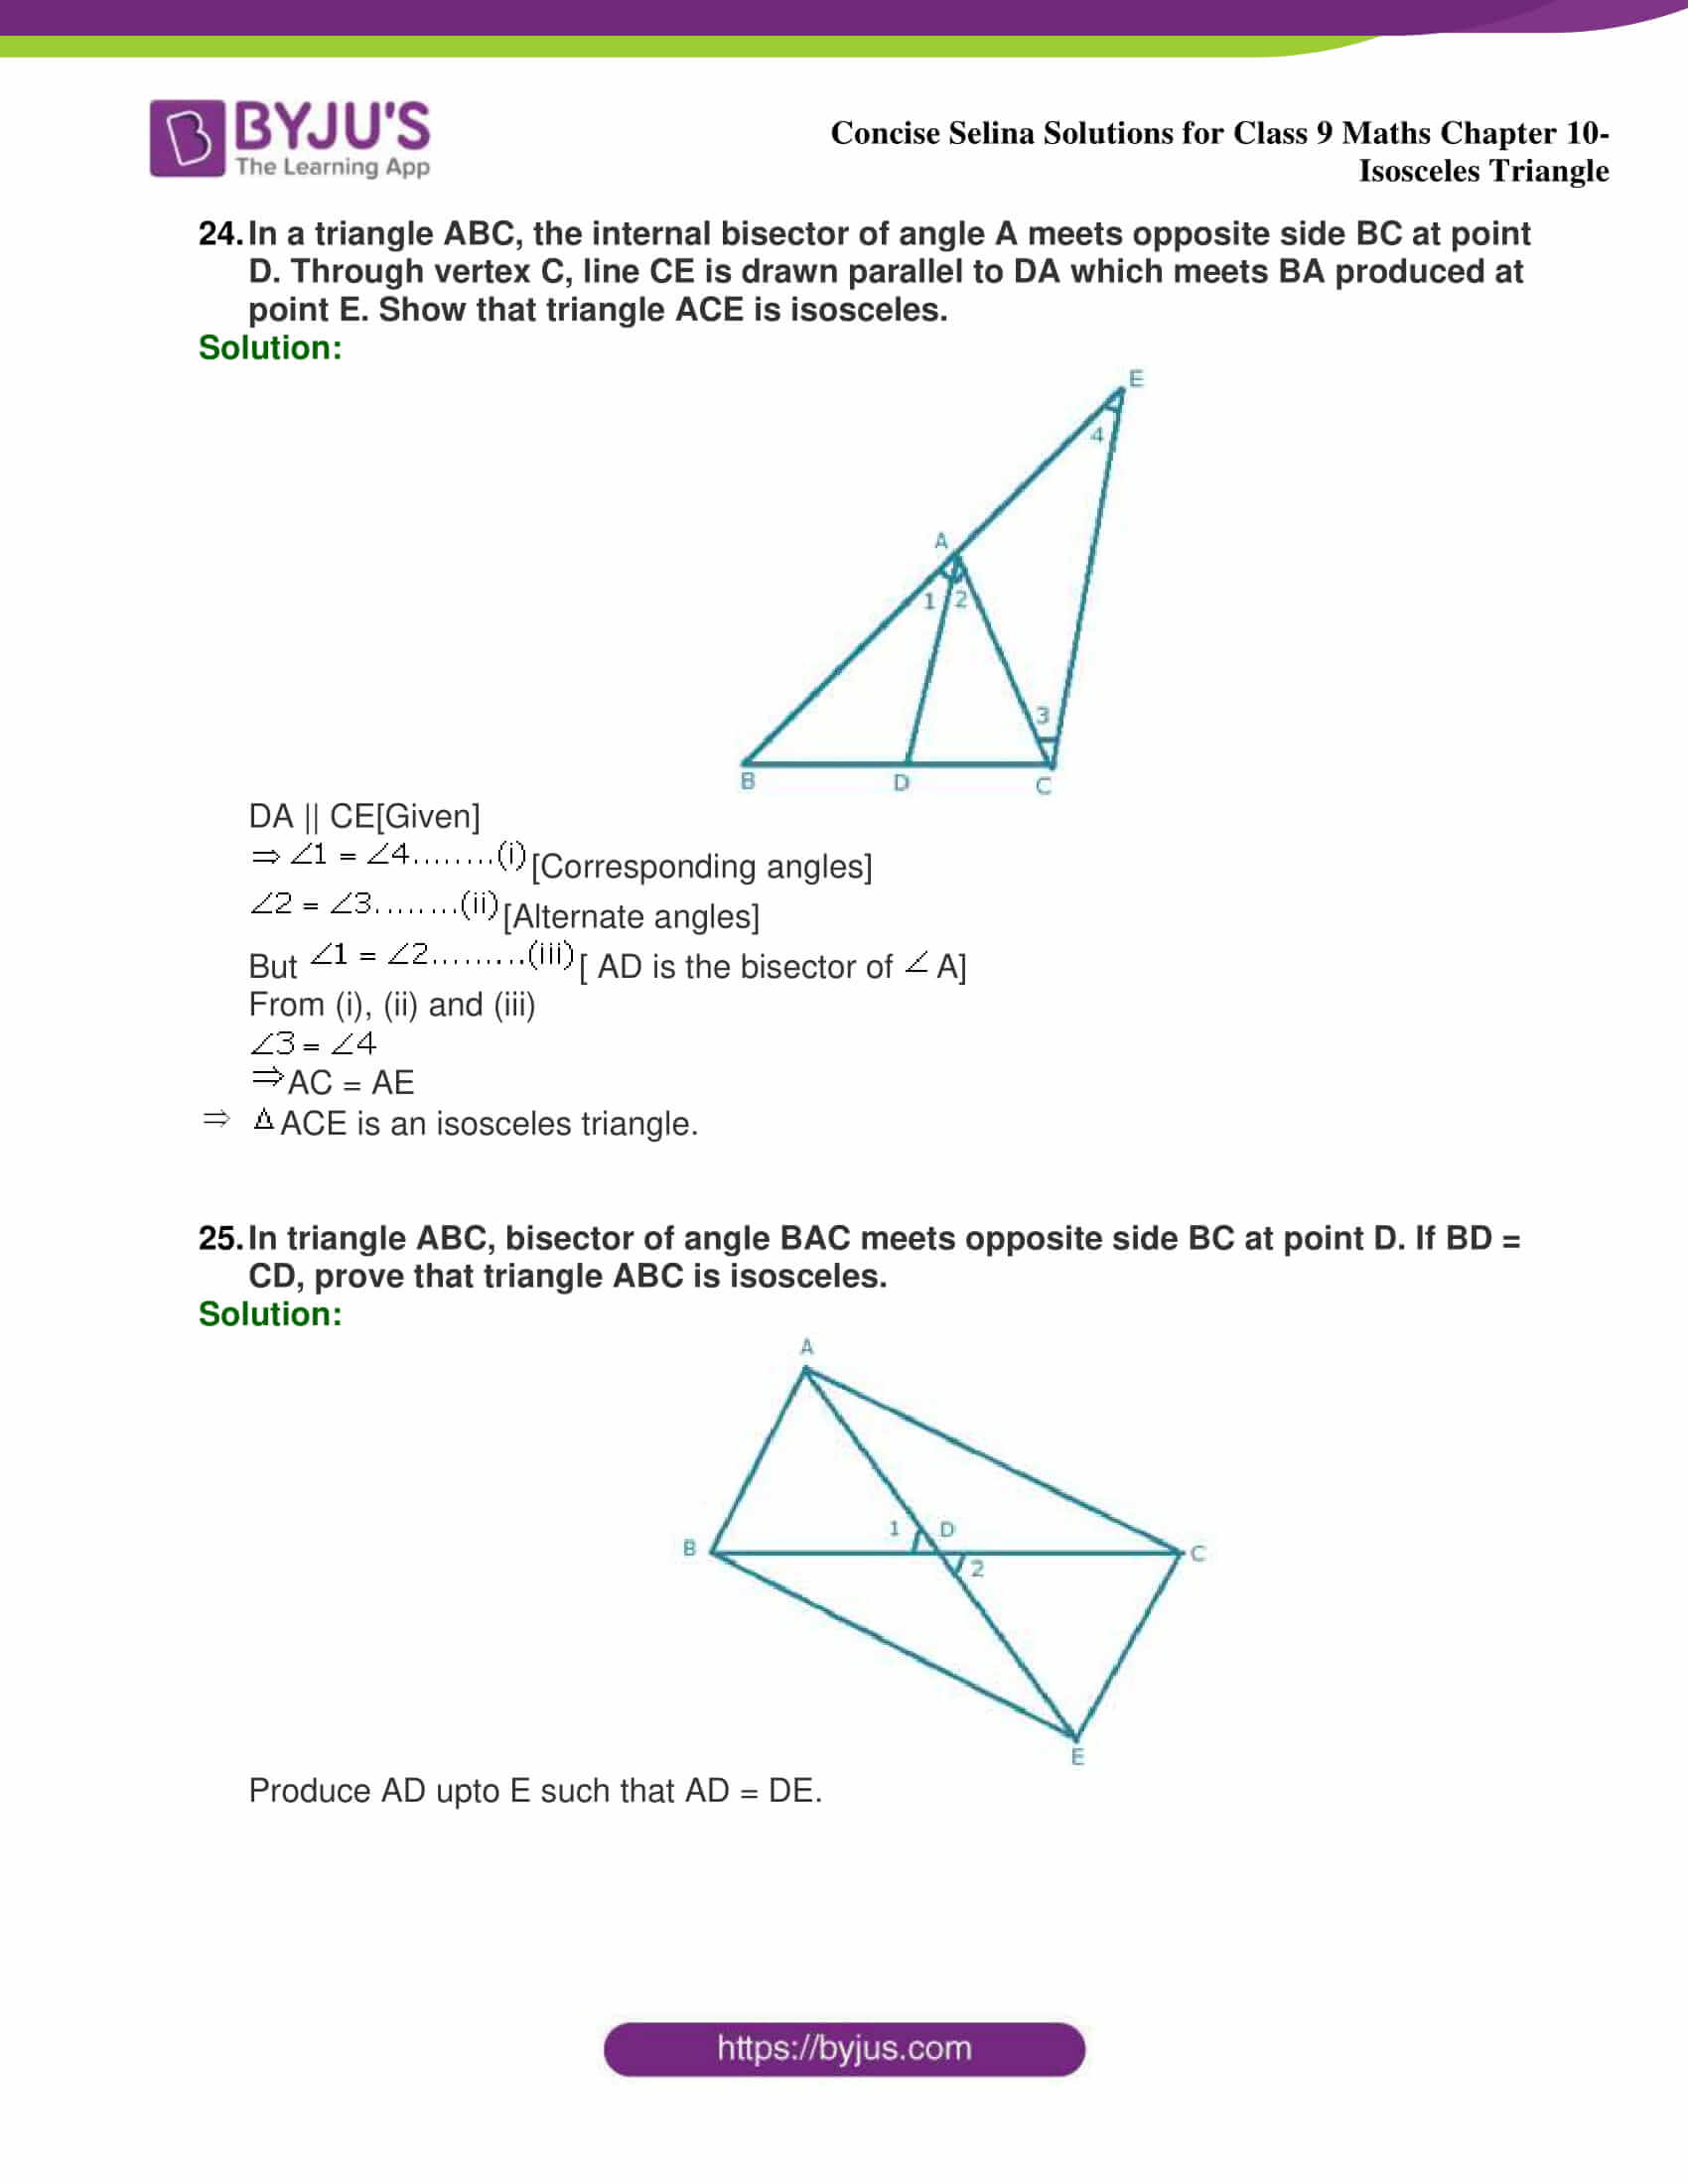 selina Solutions for Class 9 Maths Chapter 10 part 42